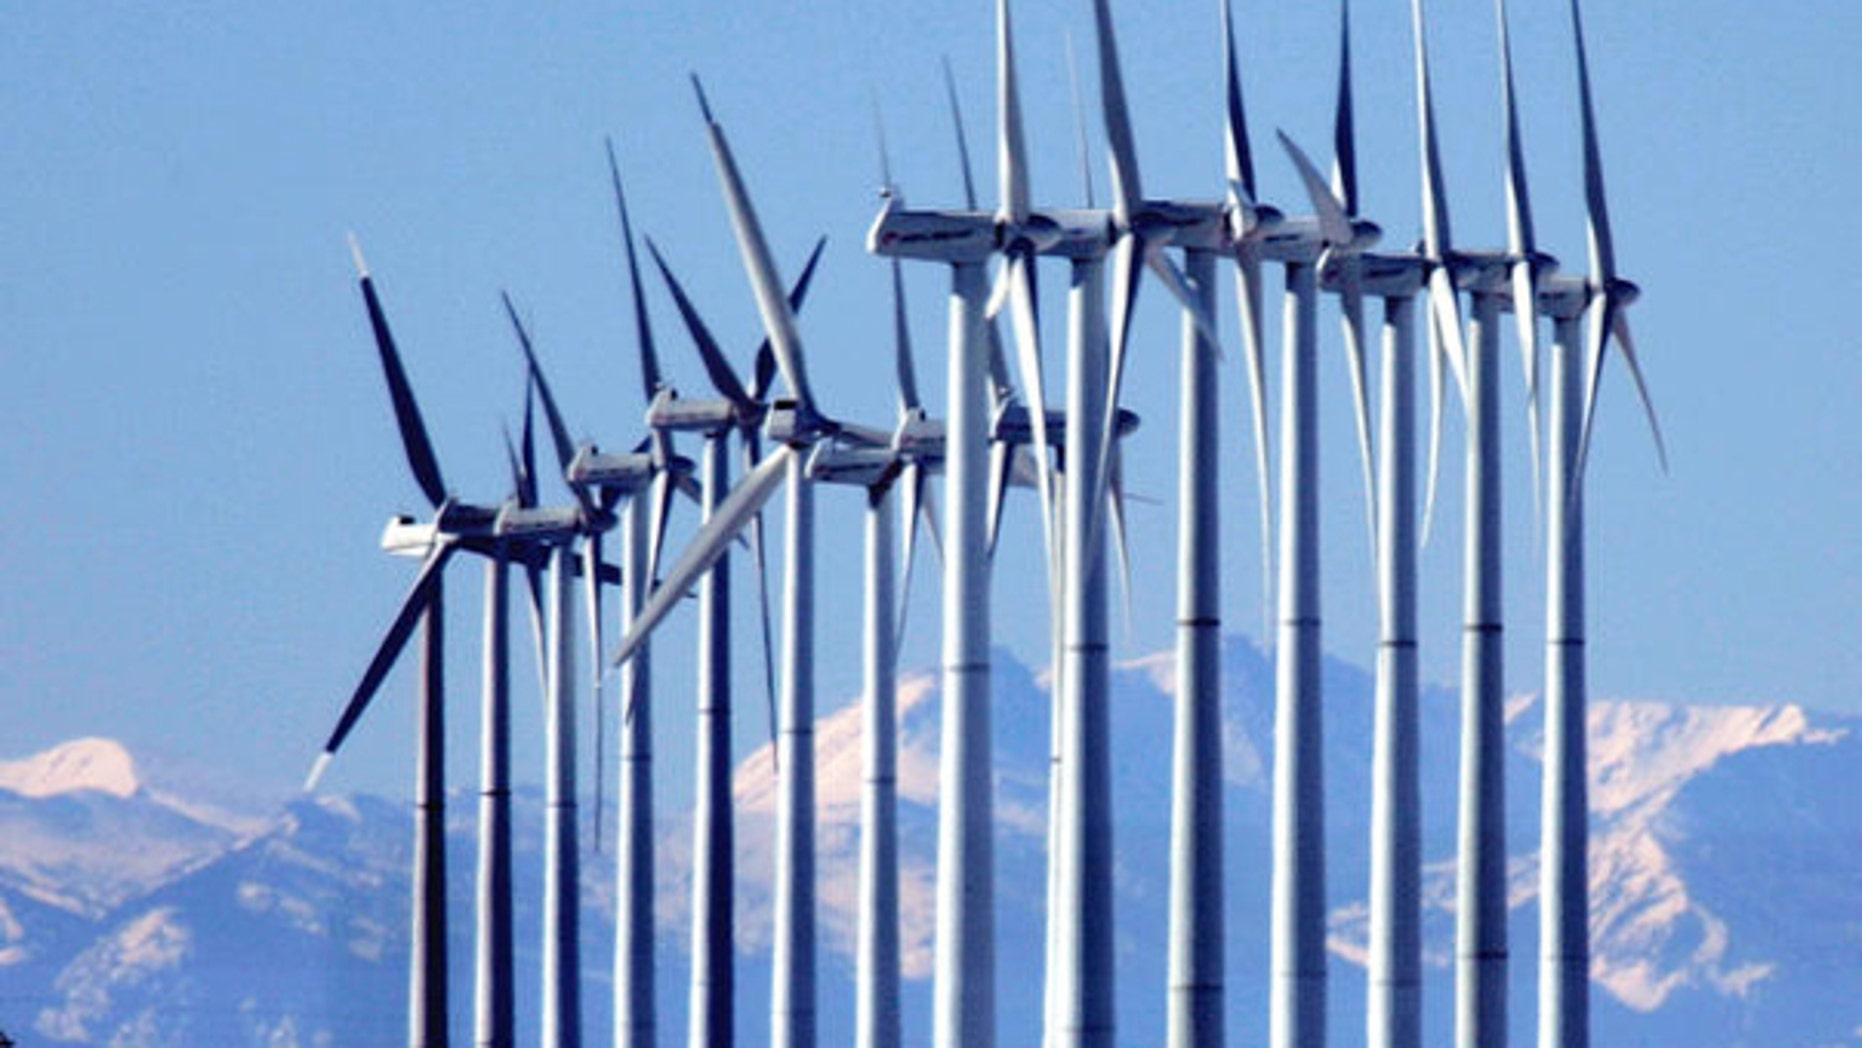 A wind farm in Colorado is shown here. (AP Photo)